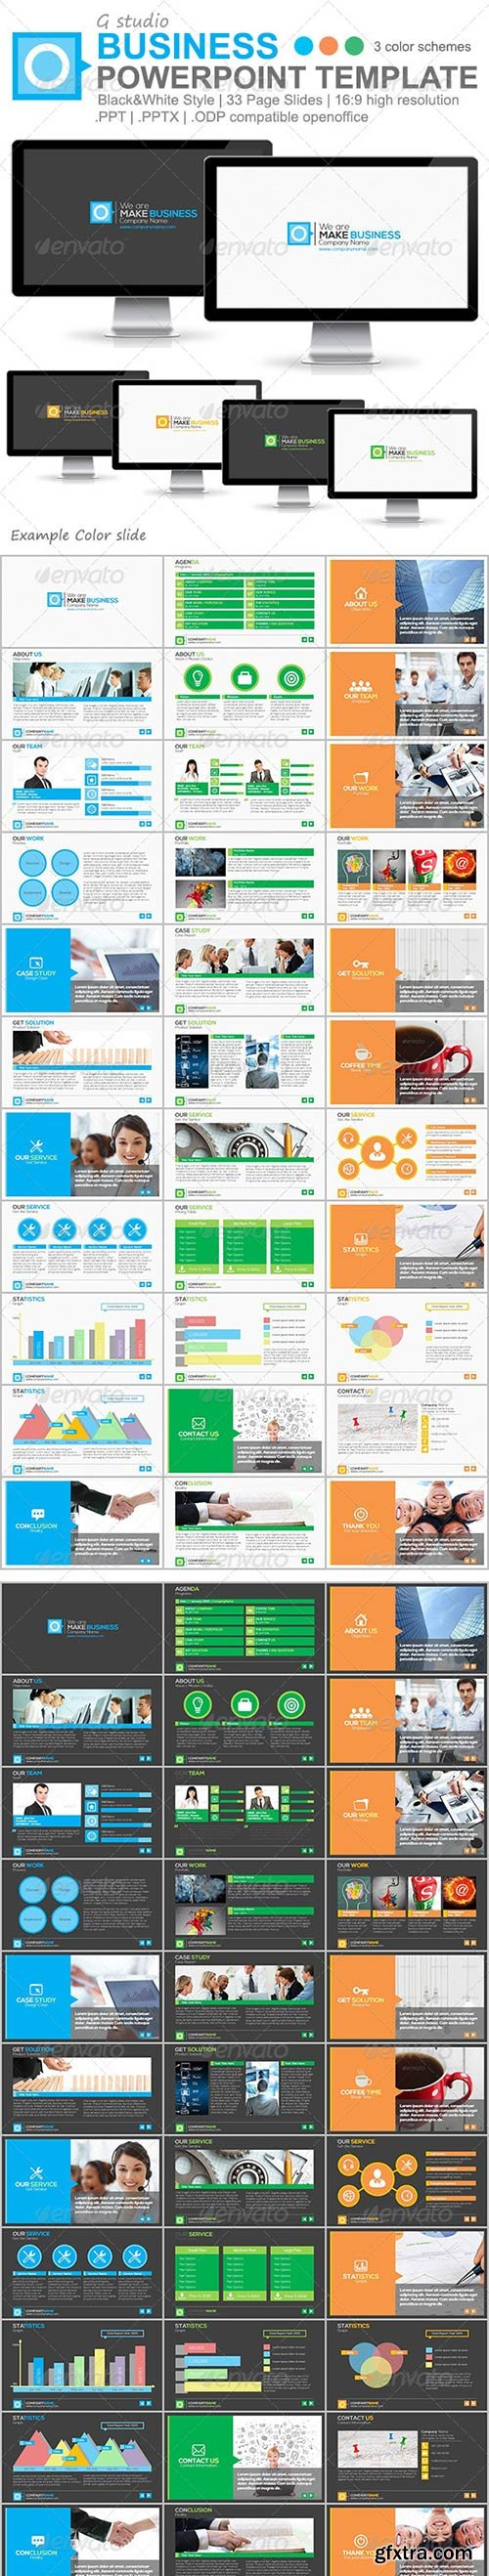 Powerpoint templates ppt pot pps pptx potx ppsx thmx page 132 graphicriver gstudio business powerpoint template powerpoint ppt powerpoint pptx rar 50 mb toneelgroepblik Image collections